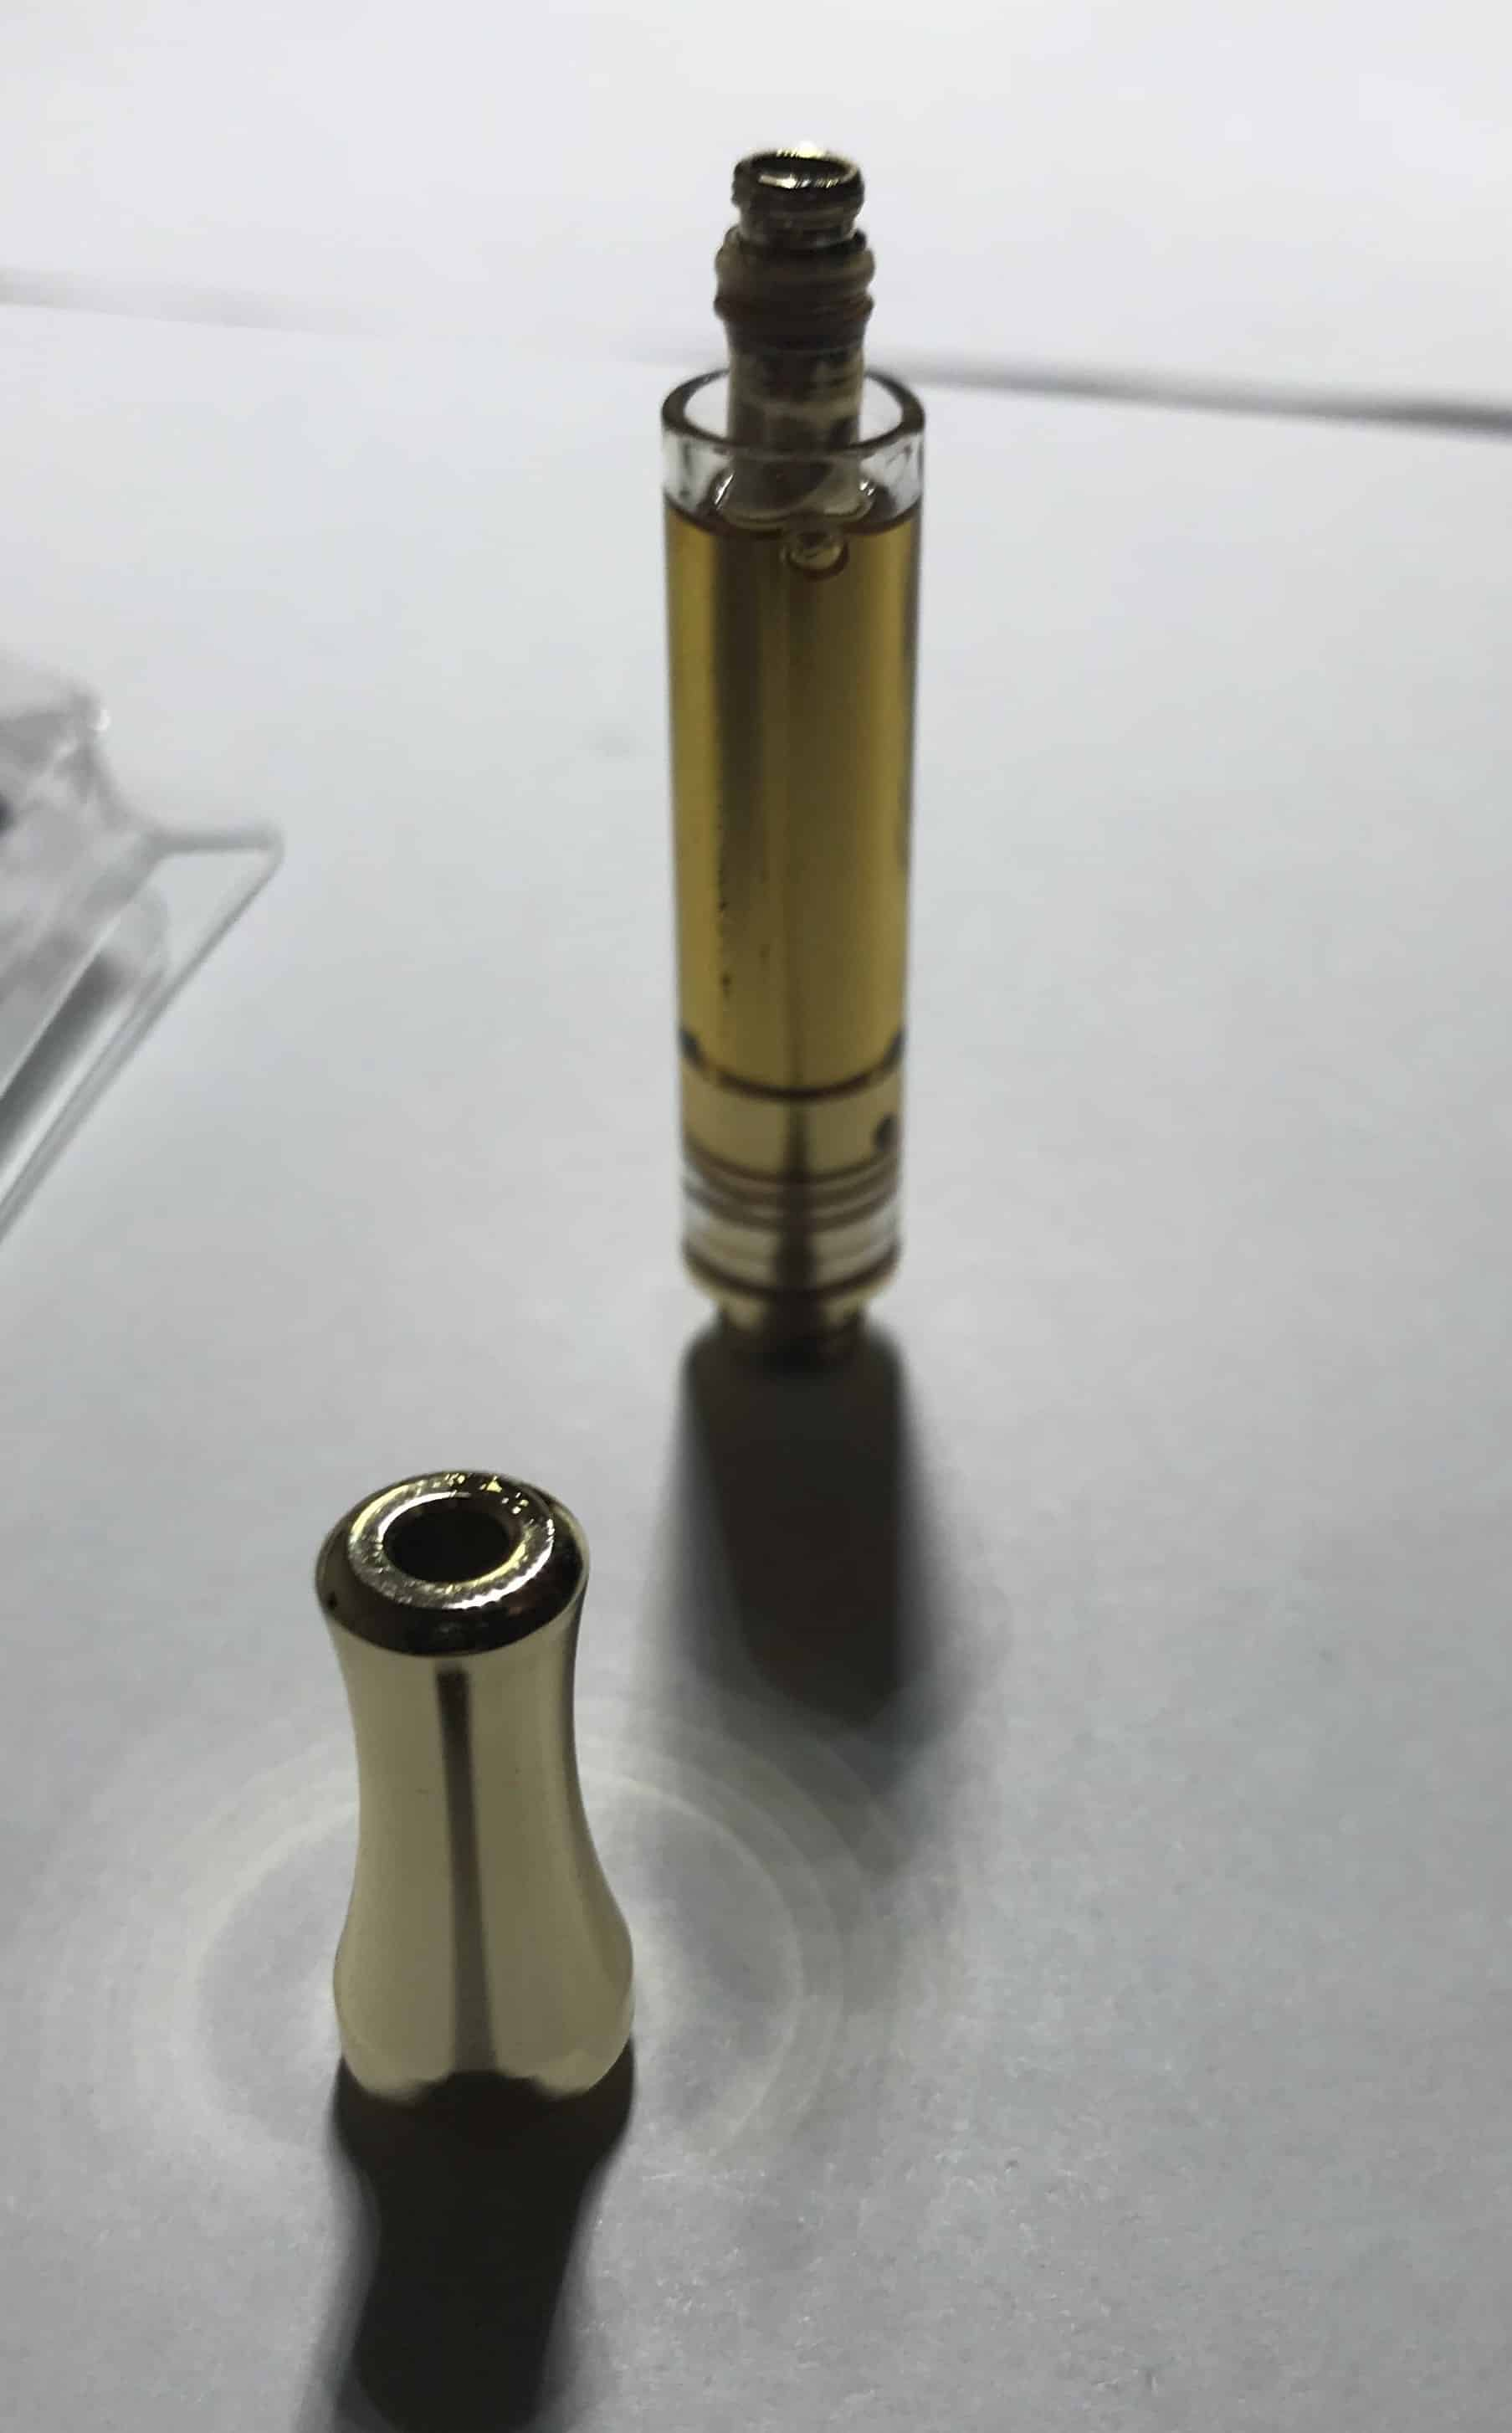 This cartridge had a weak atomizer, affecting the quality of hits that you take